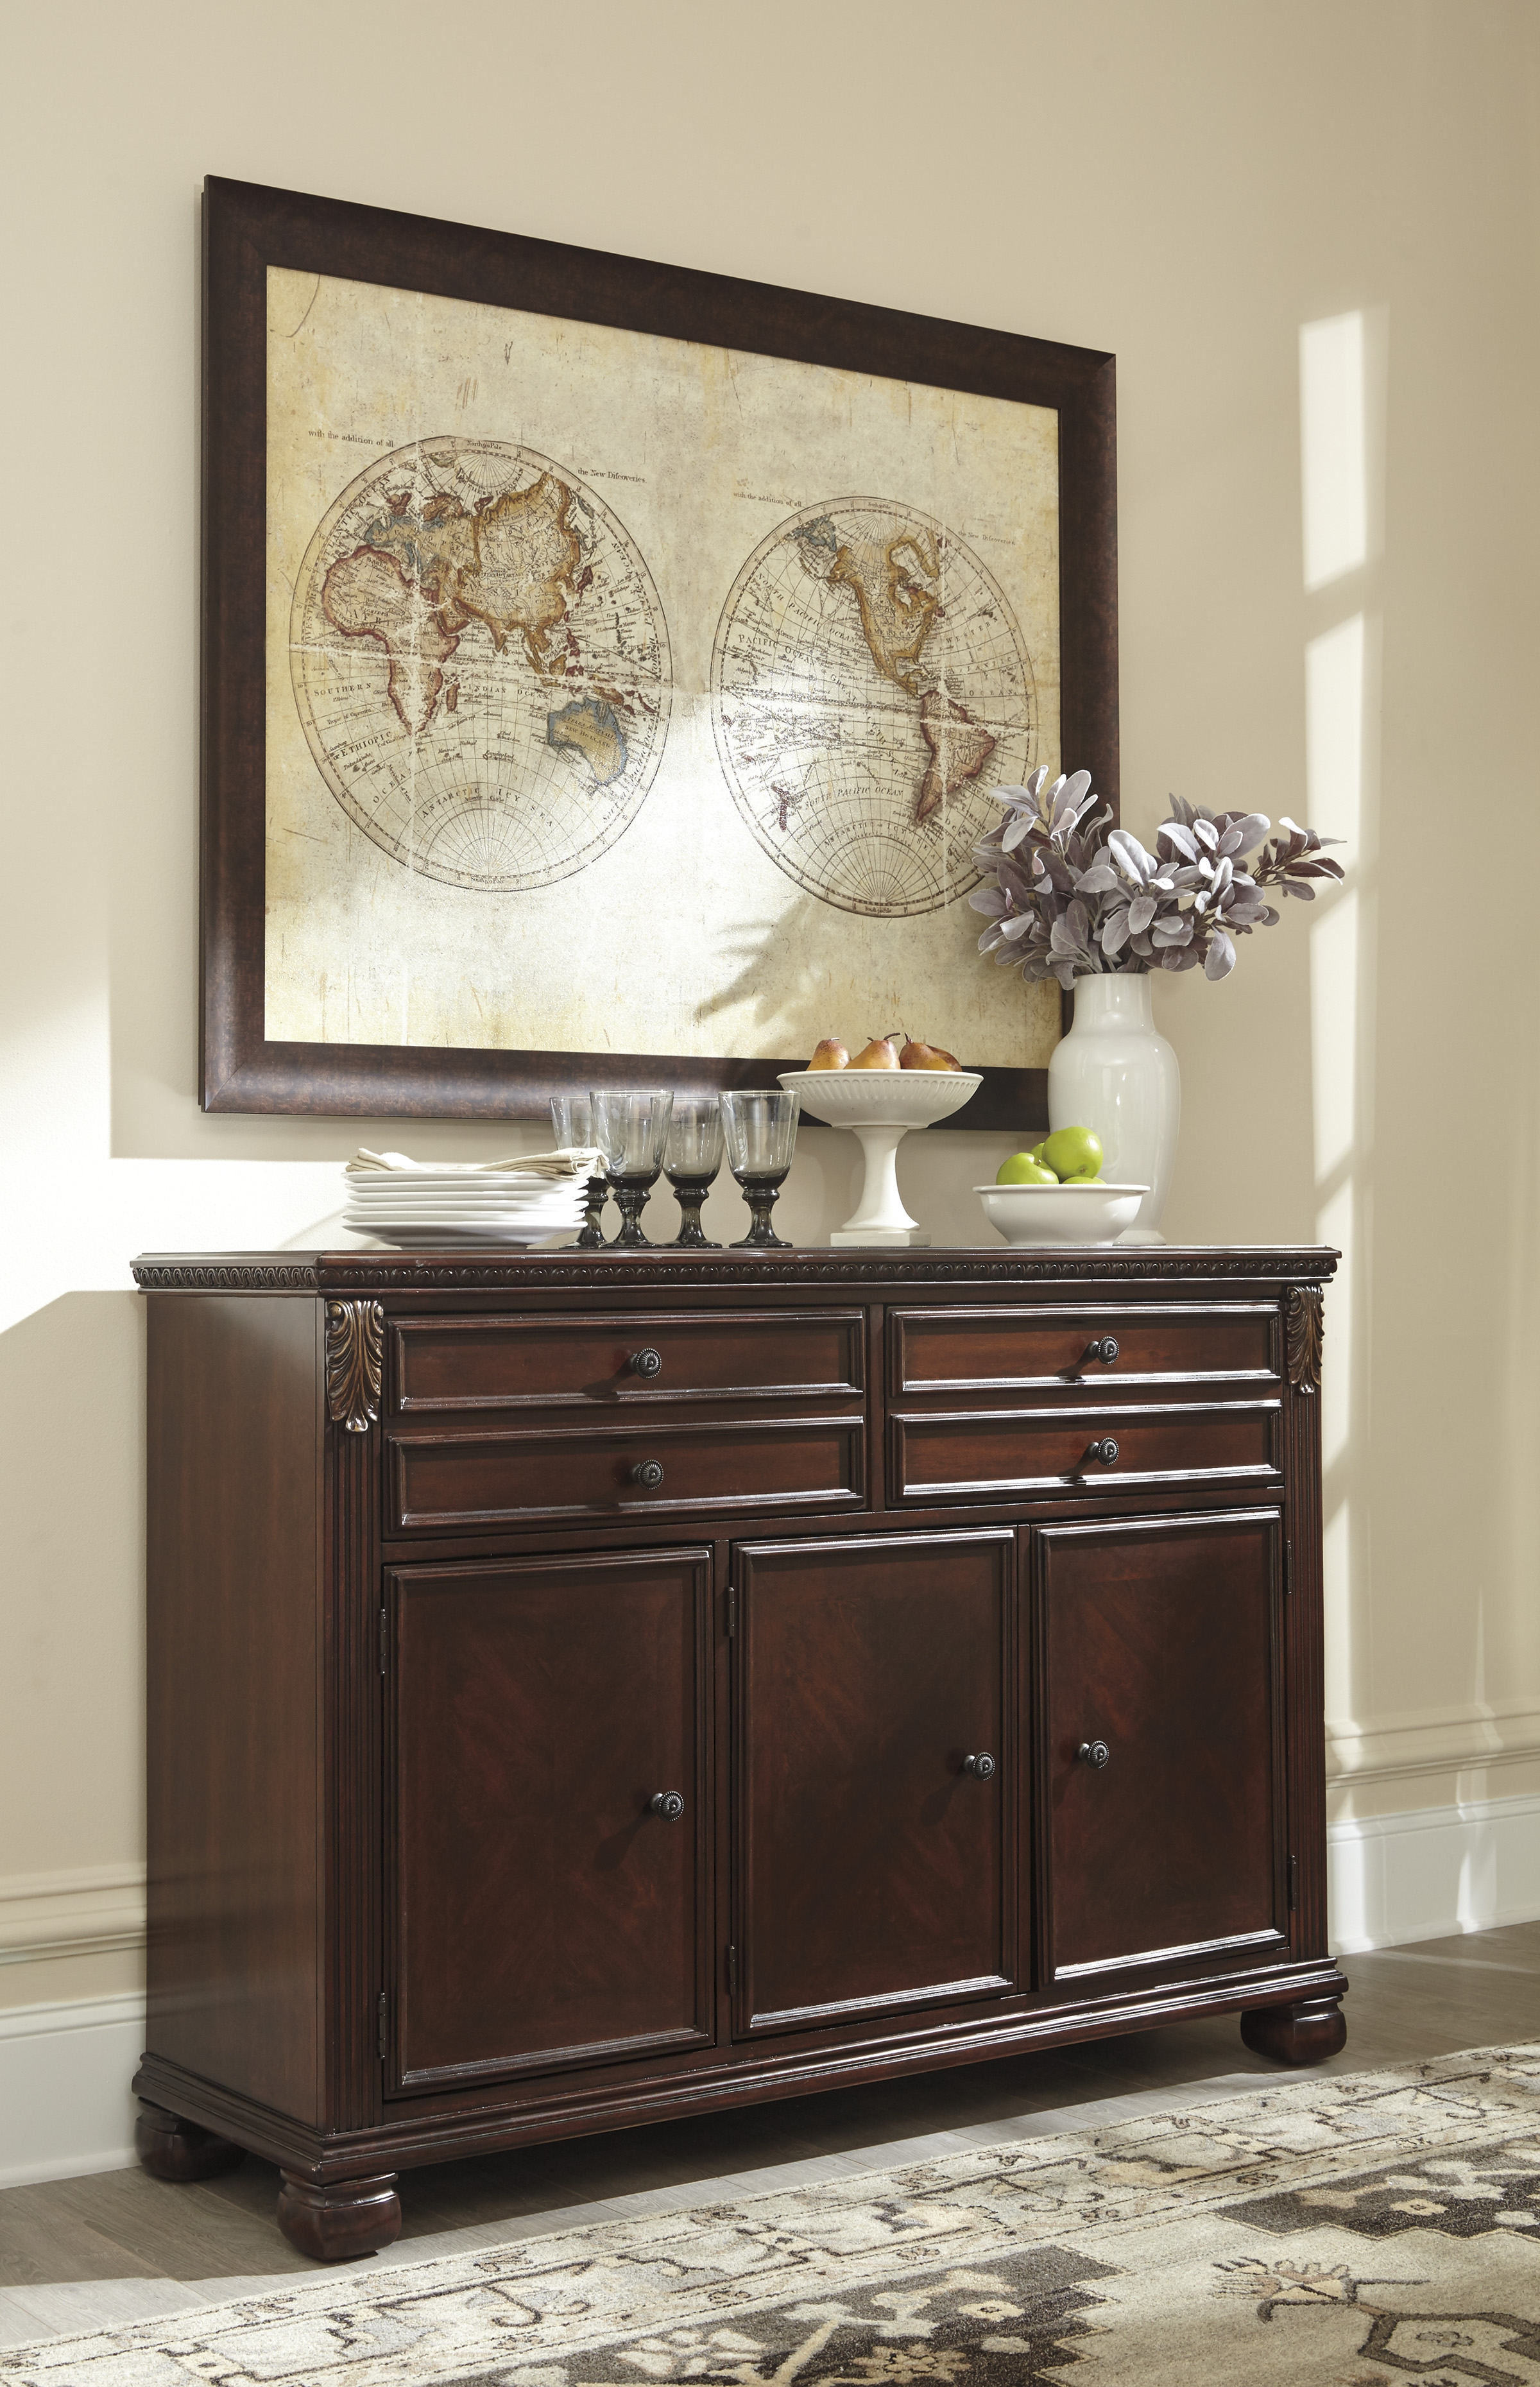 Ashley Furniture Leahlyn Dining Buffet The Classy Home